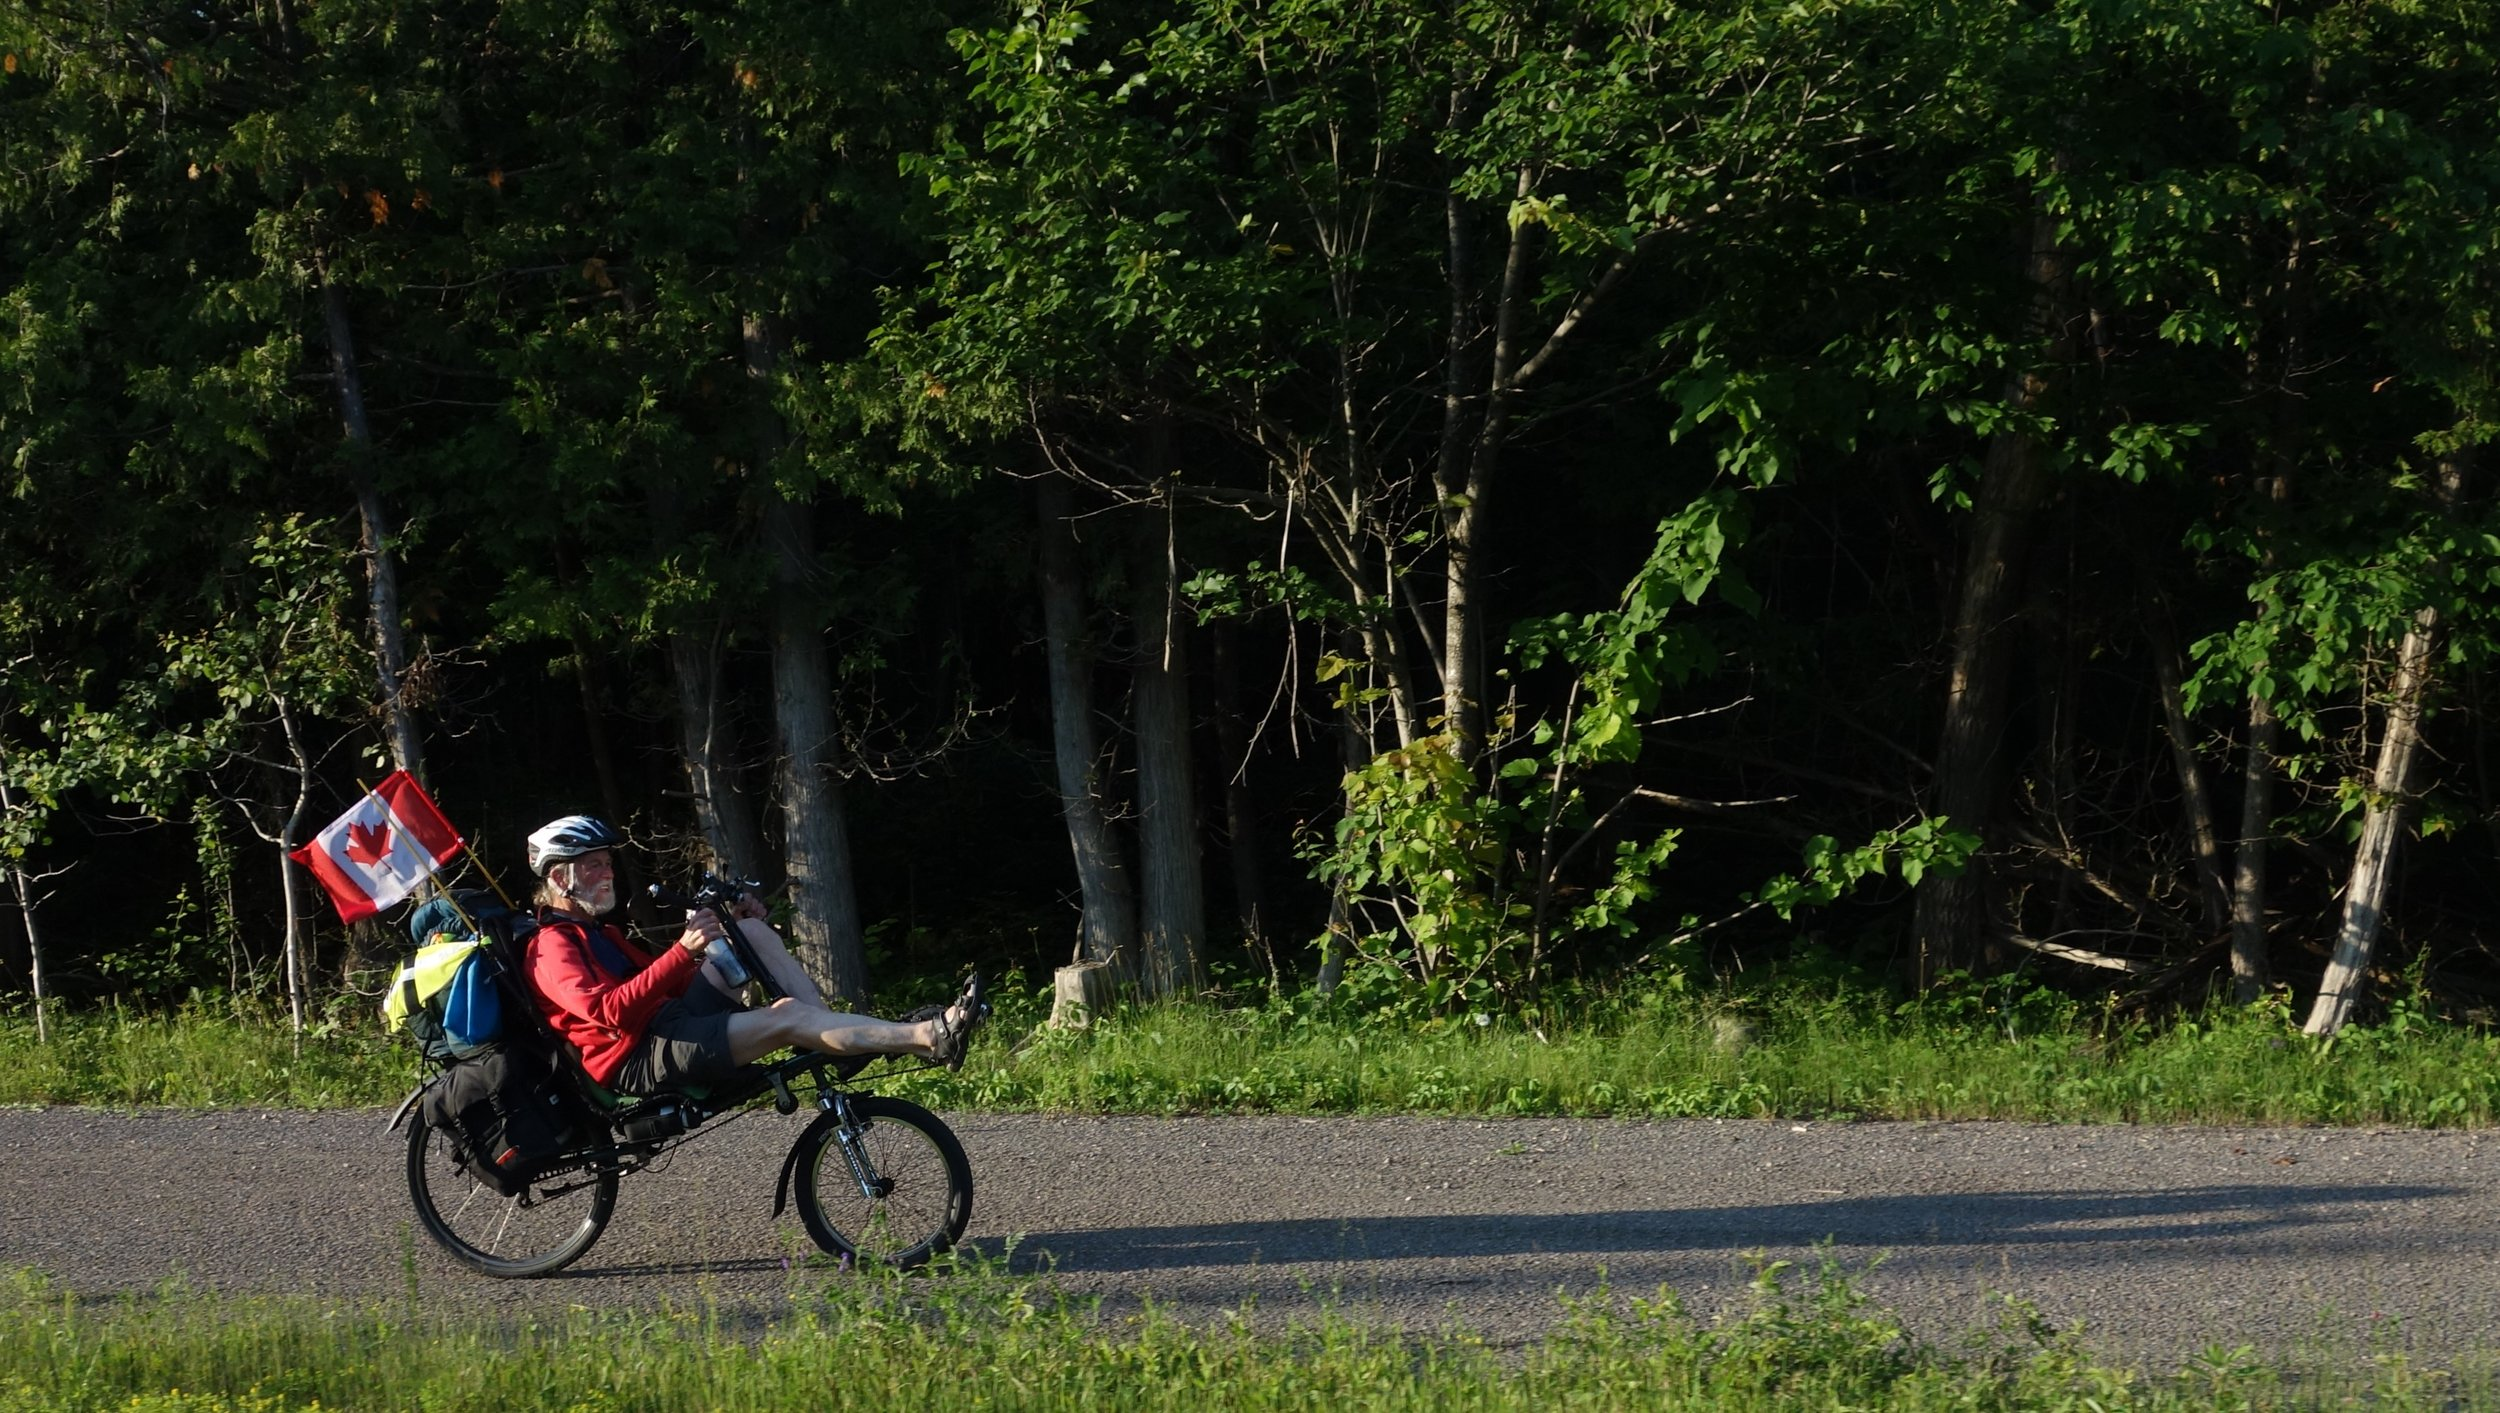 A doctor and a preacher, this cyclist and I met as the sun was setting and found a great camping spot for the night.